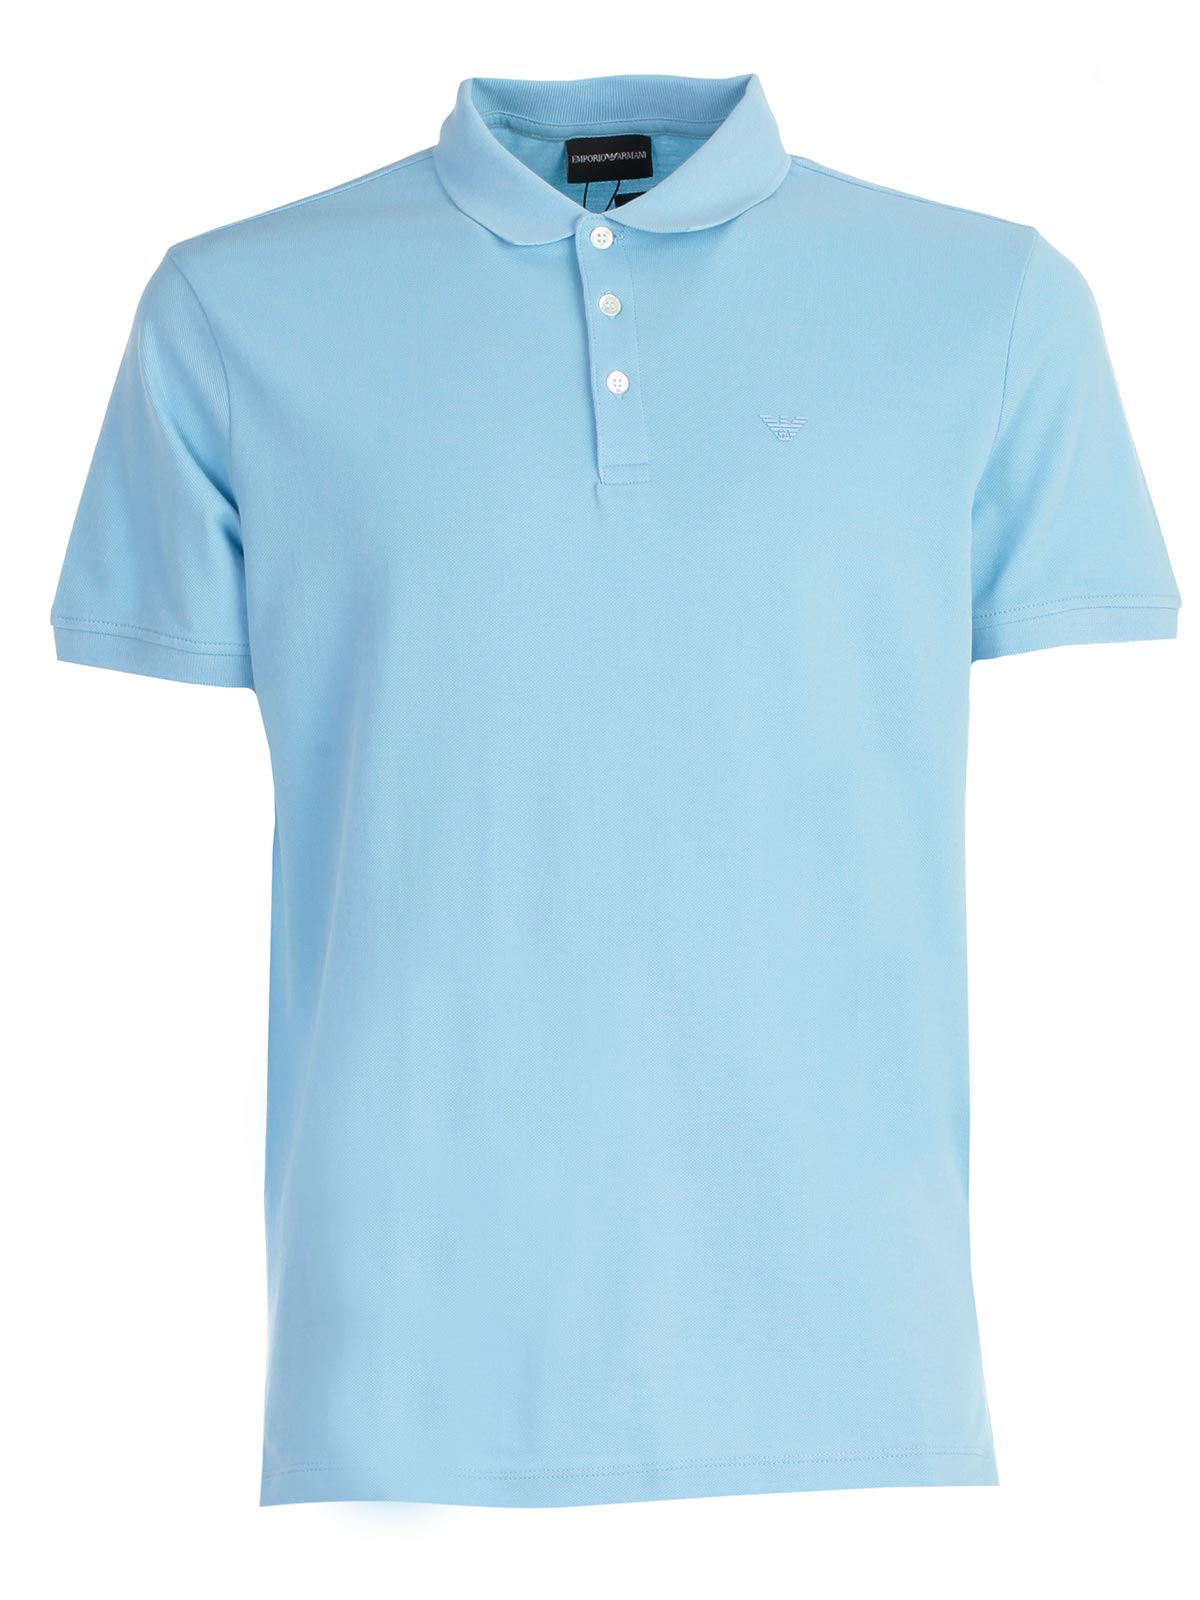 los Angeles be03a 5236f Emporio Armani Polo